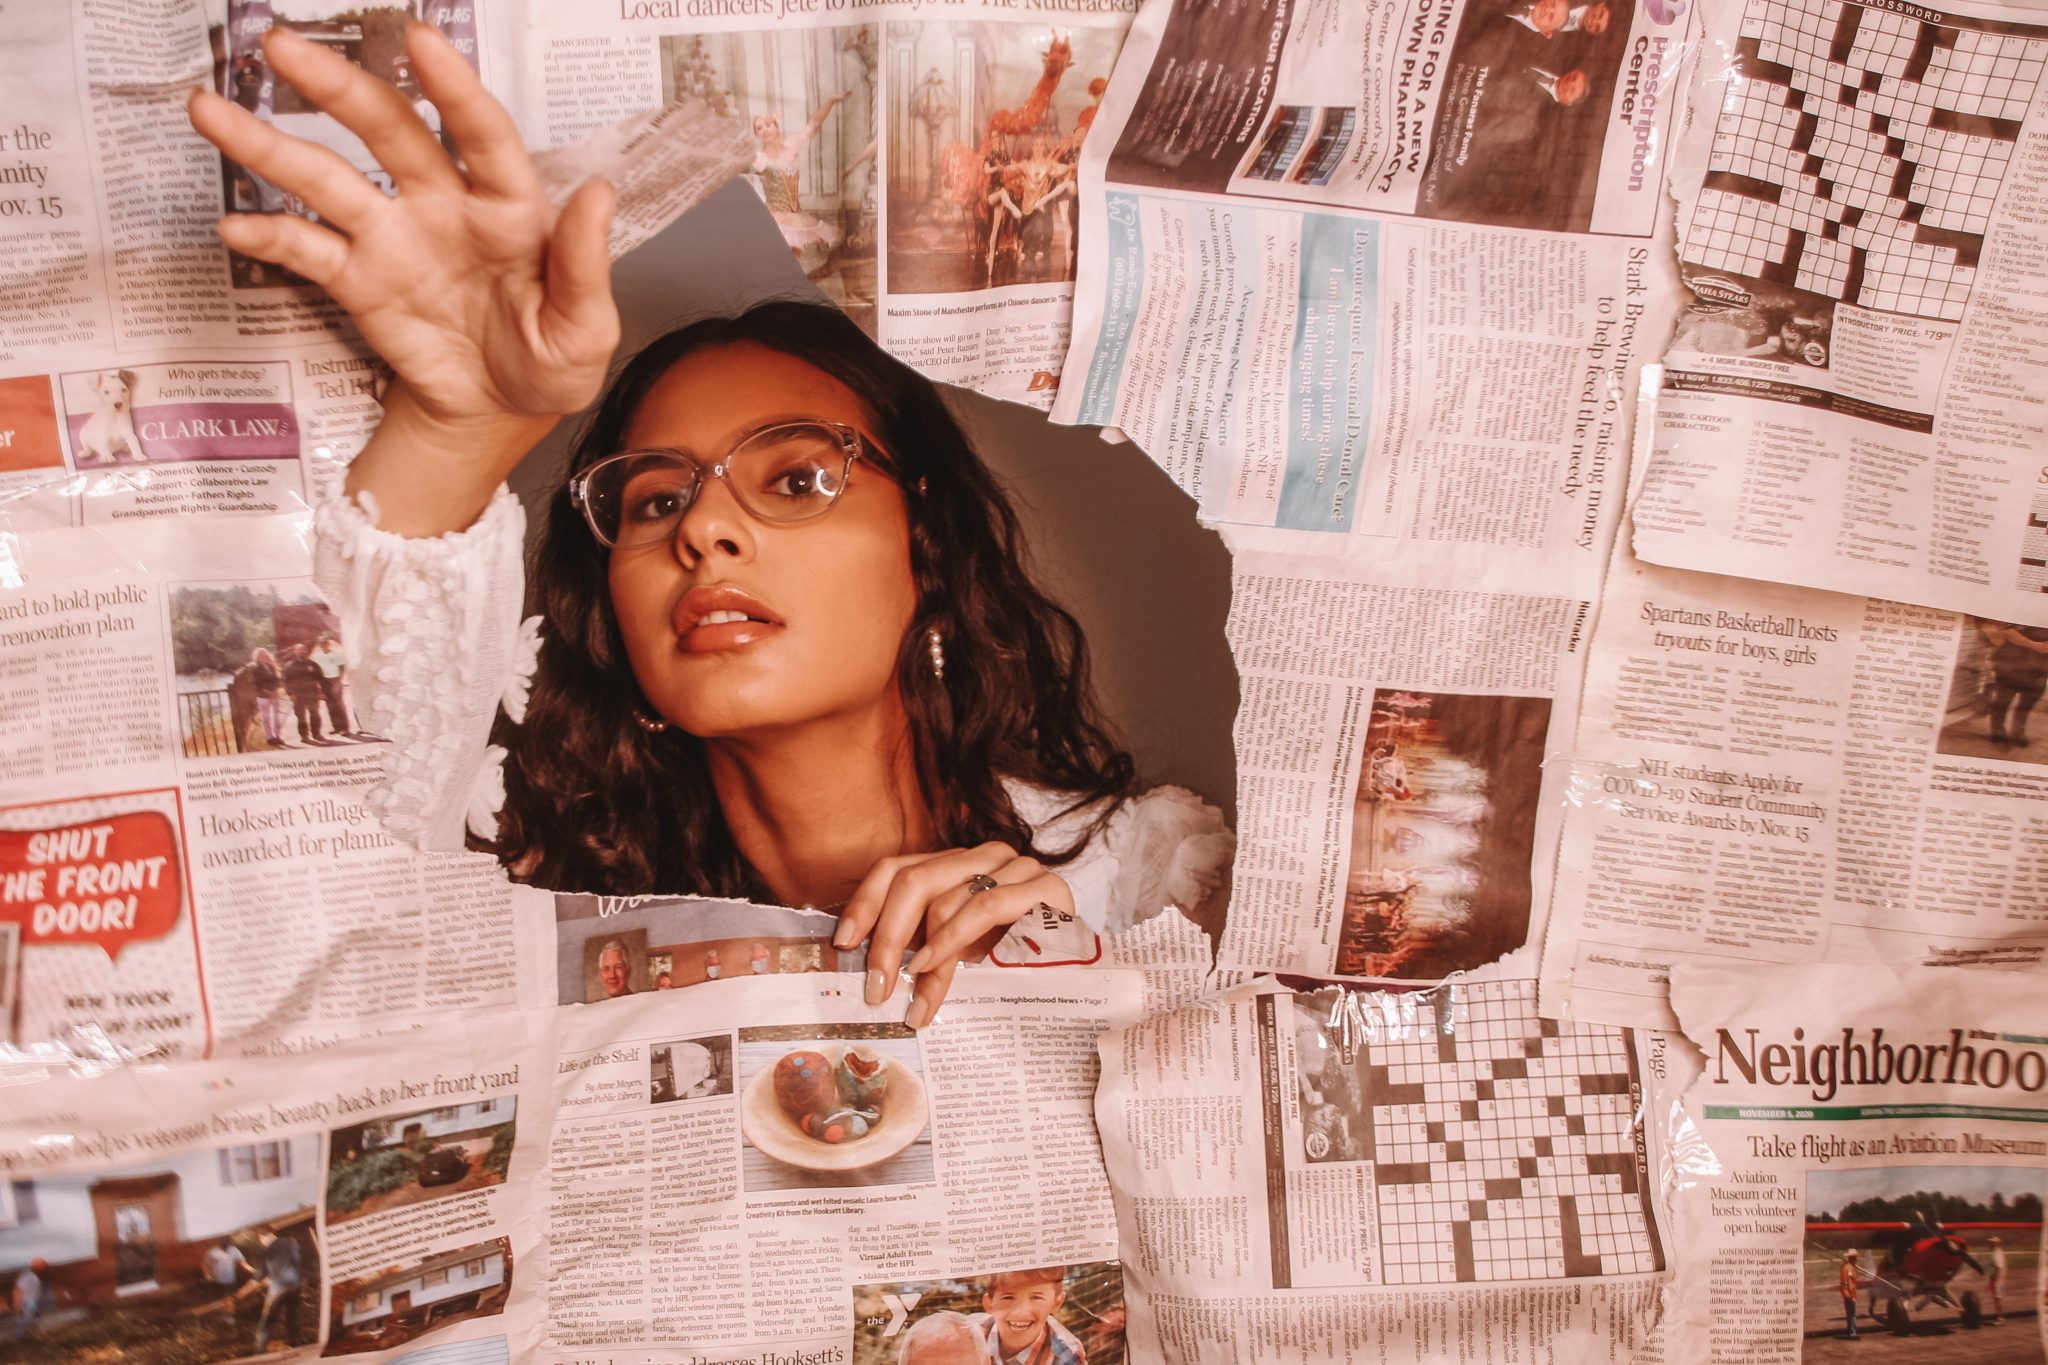 Alsina Nelselly (College of the Holy Cross, '21), Breaking News, photograph featuring news clippings, 12.3